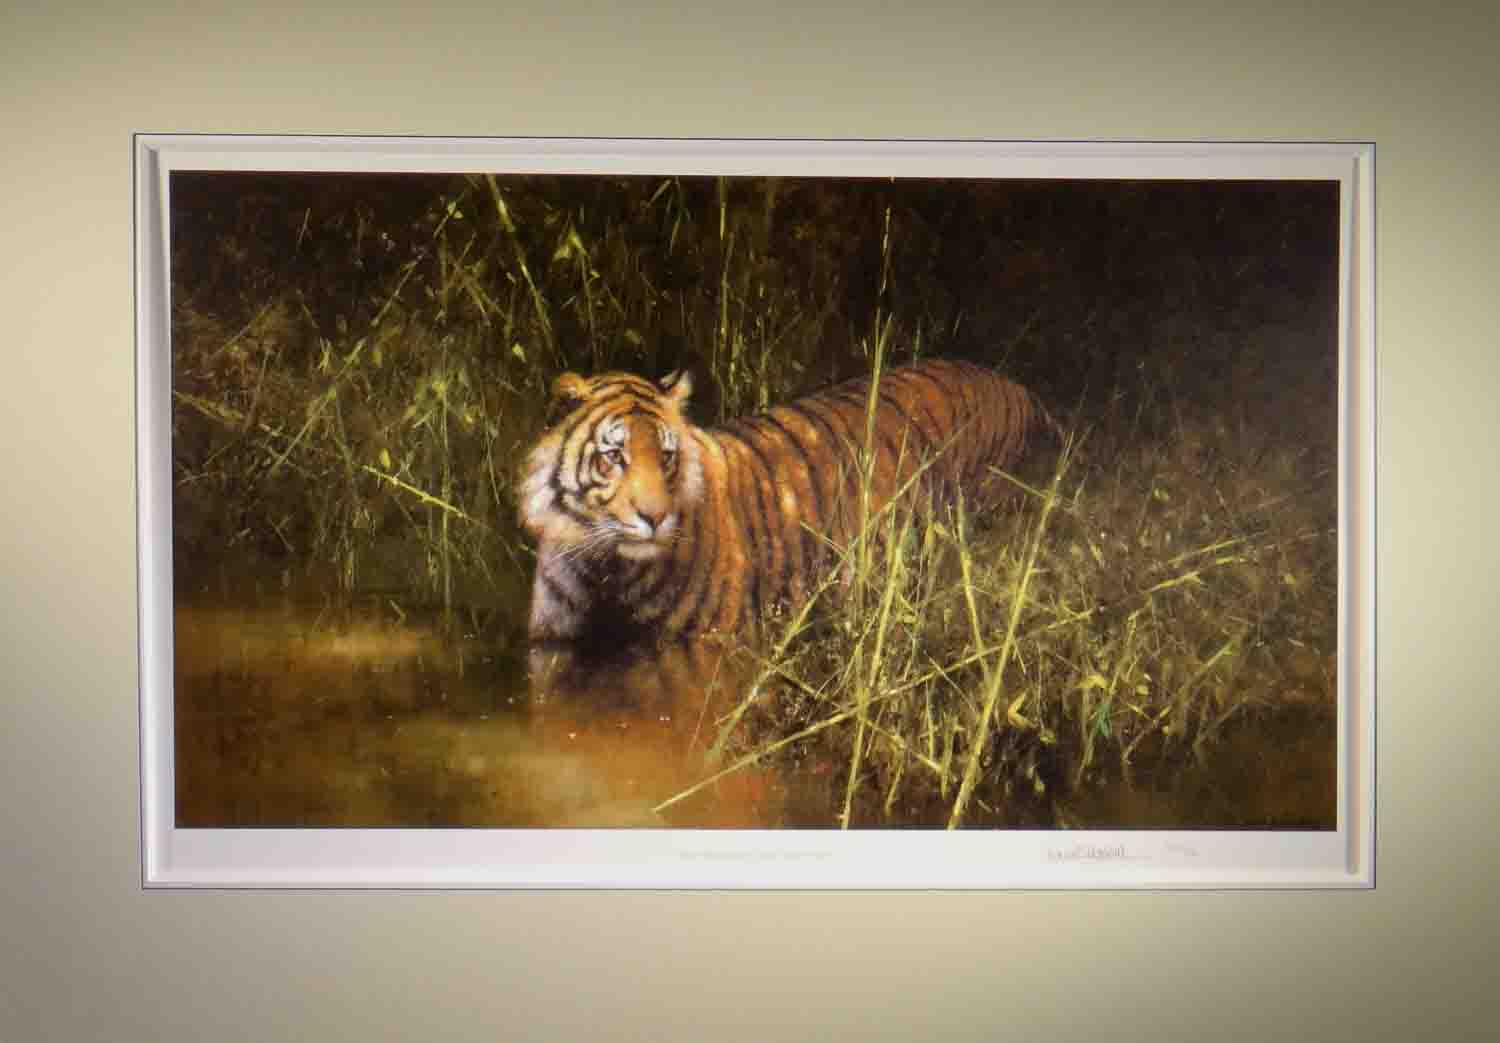 david shepherd, into the sunlight came a tiger, signed limited edition print